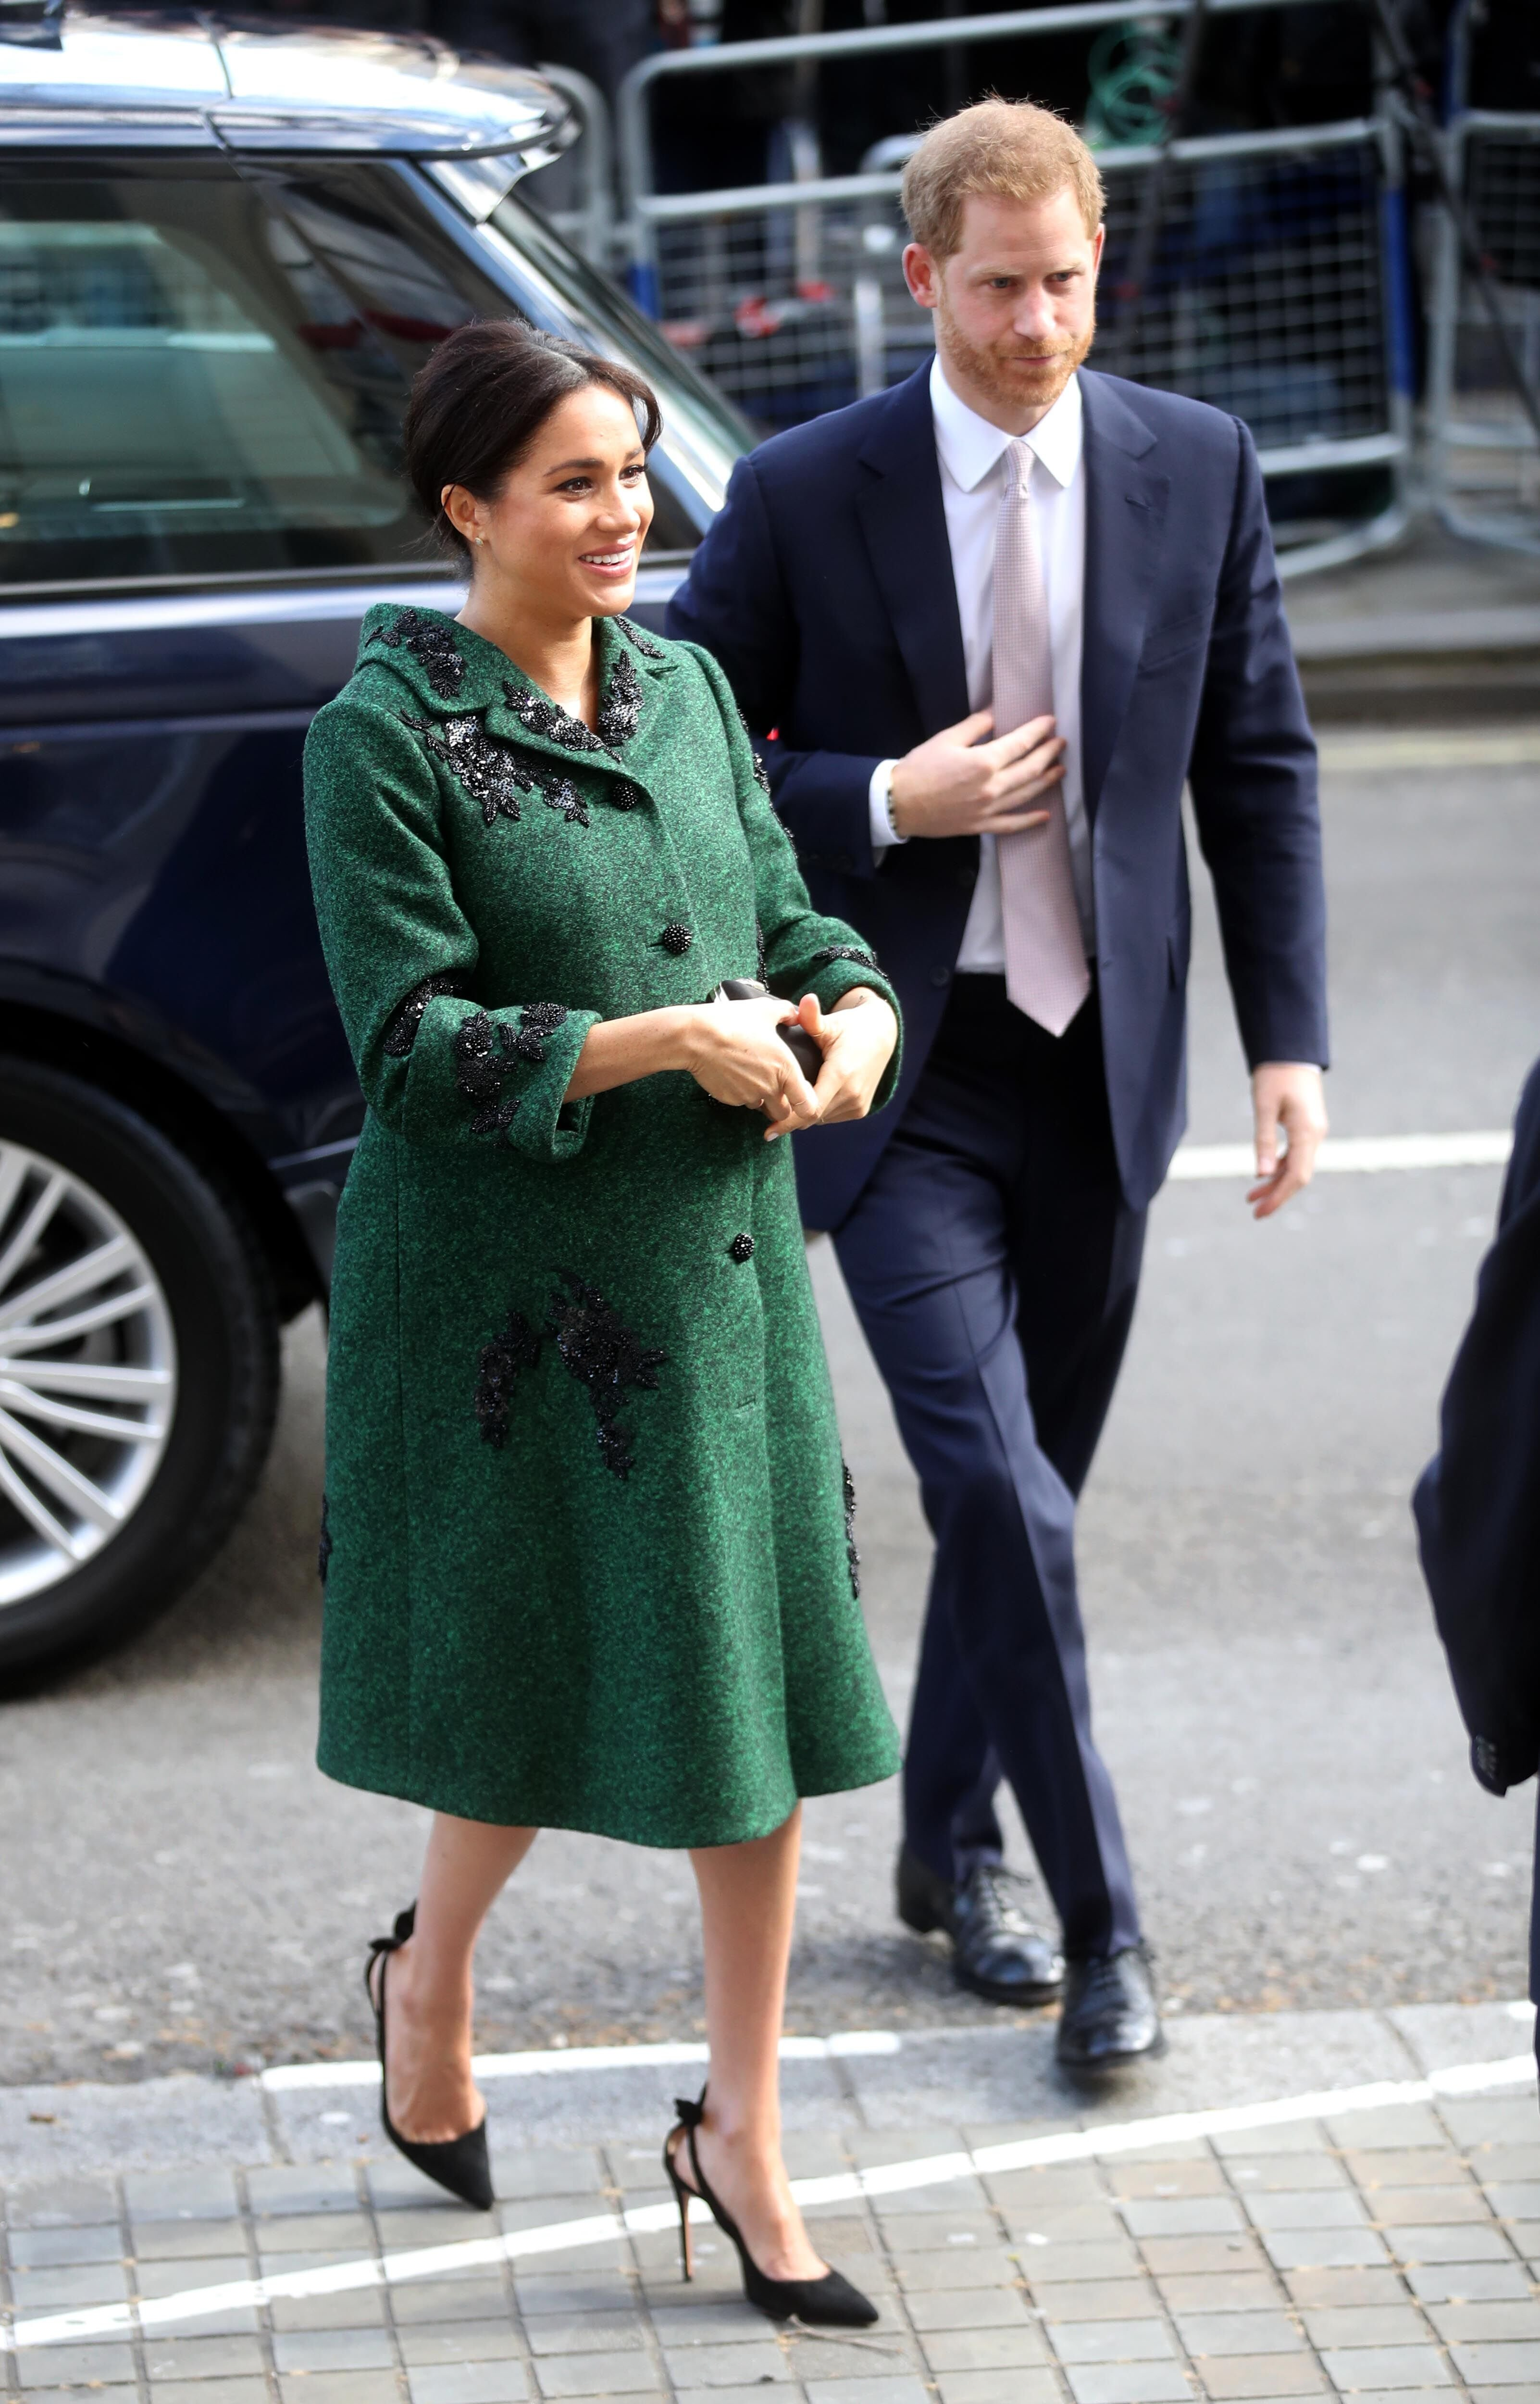 Meghan Markle walks with Prince Harry, in an emerald green coat. | Source: Getty Images